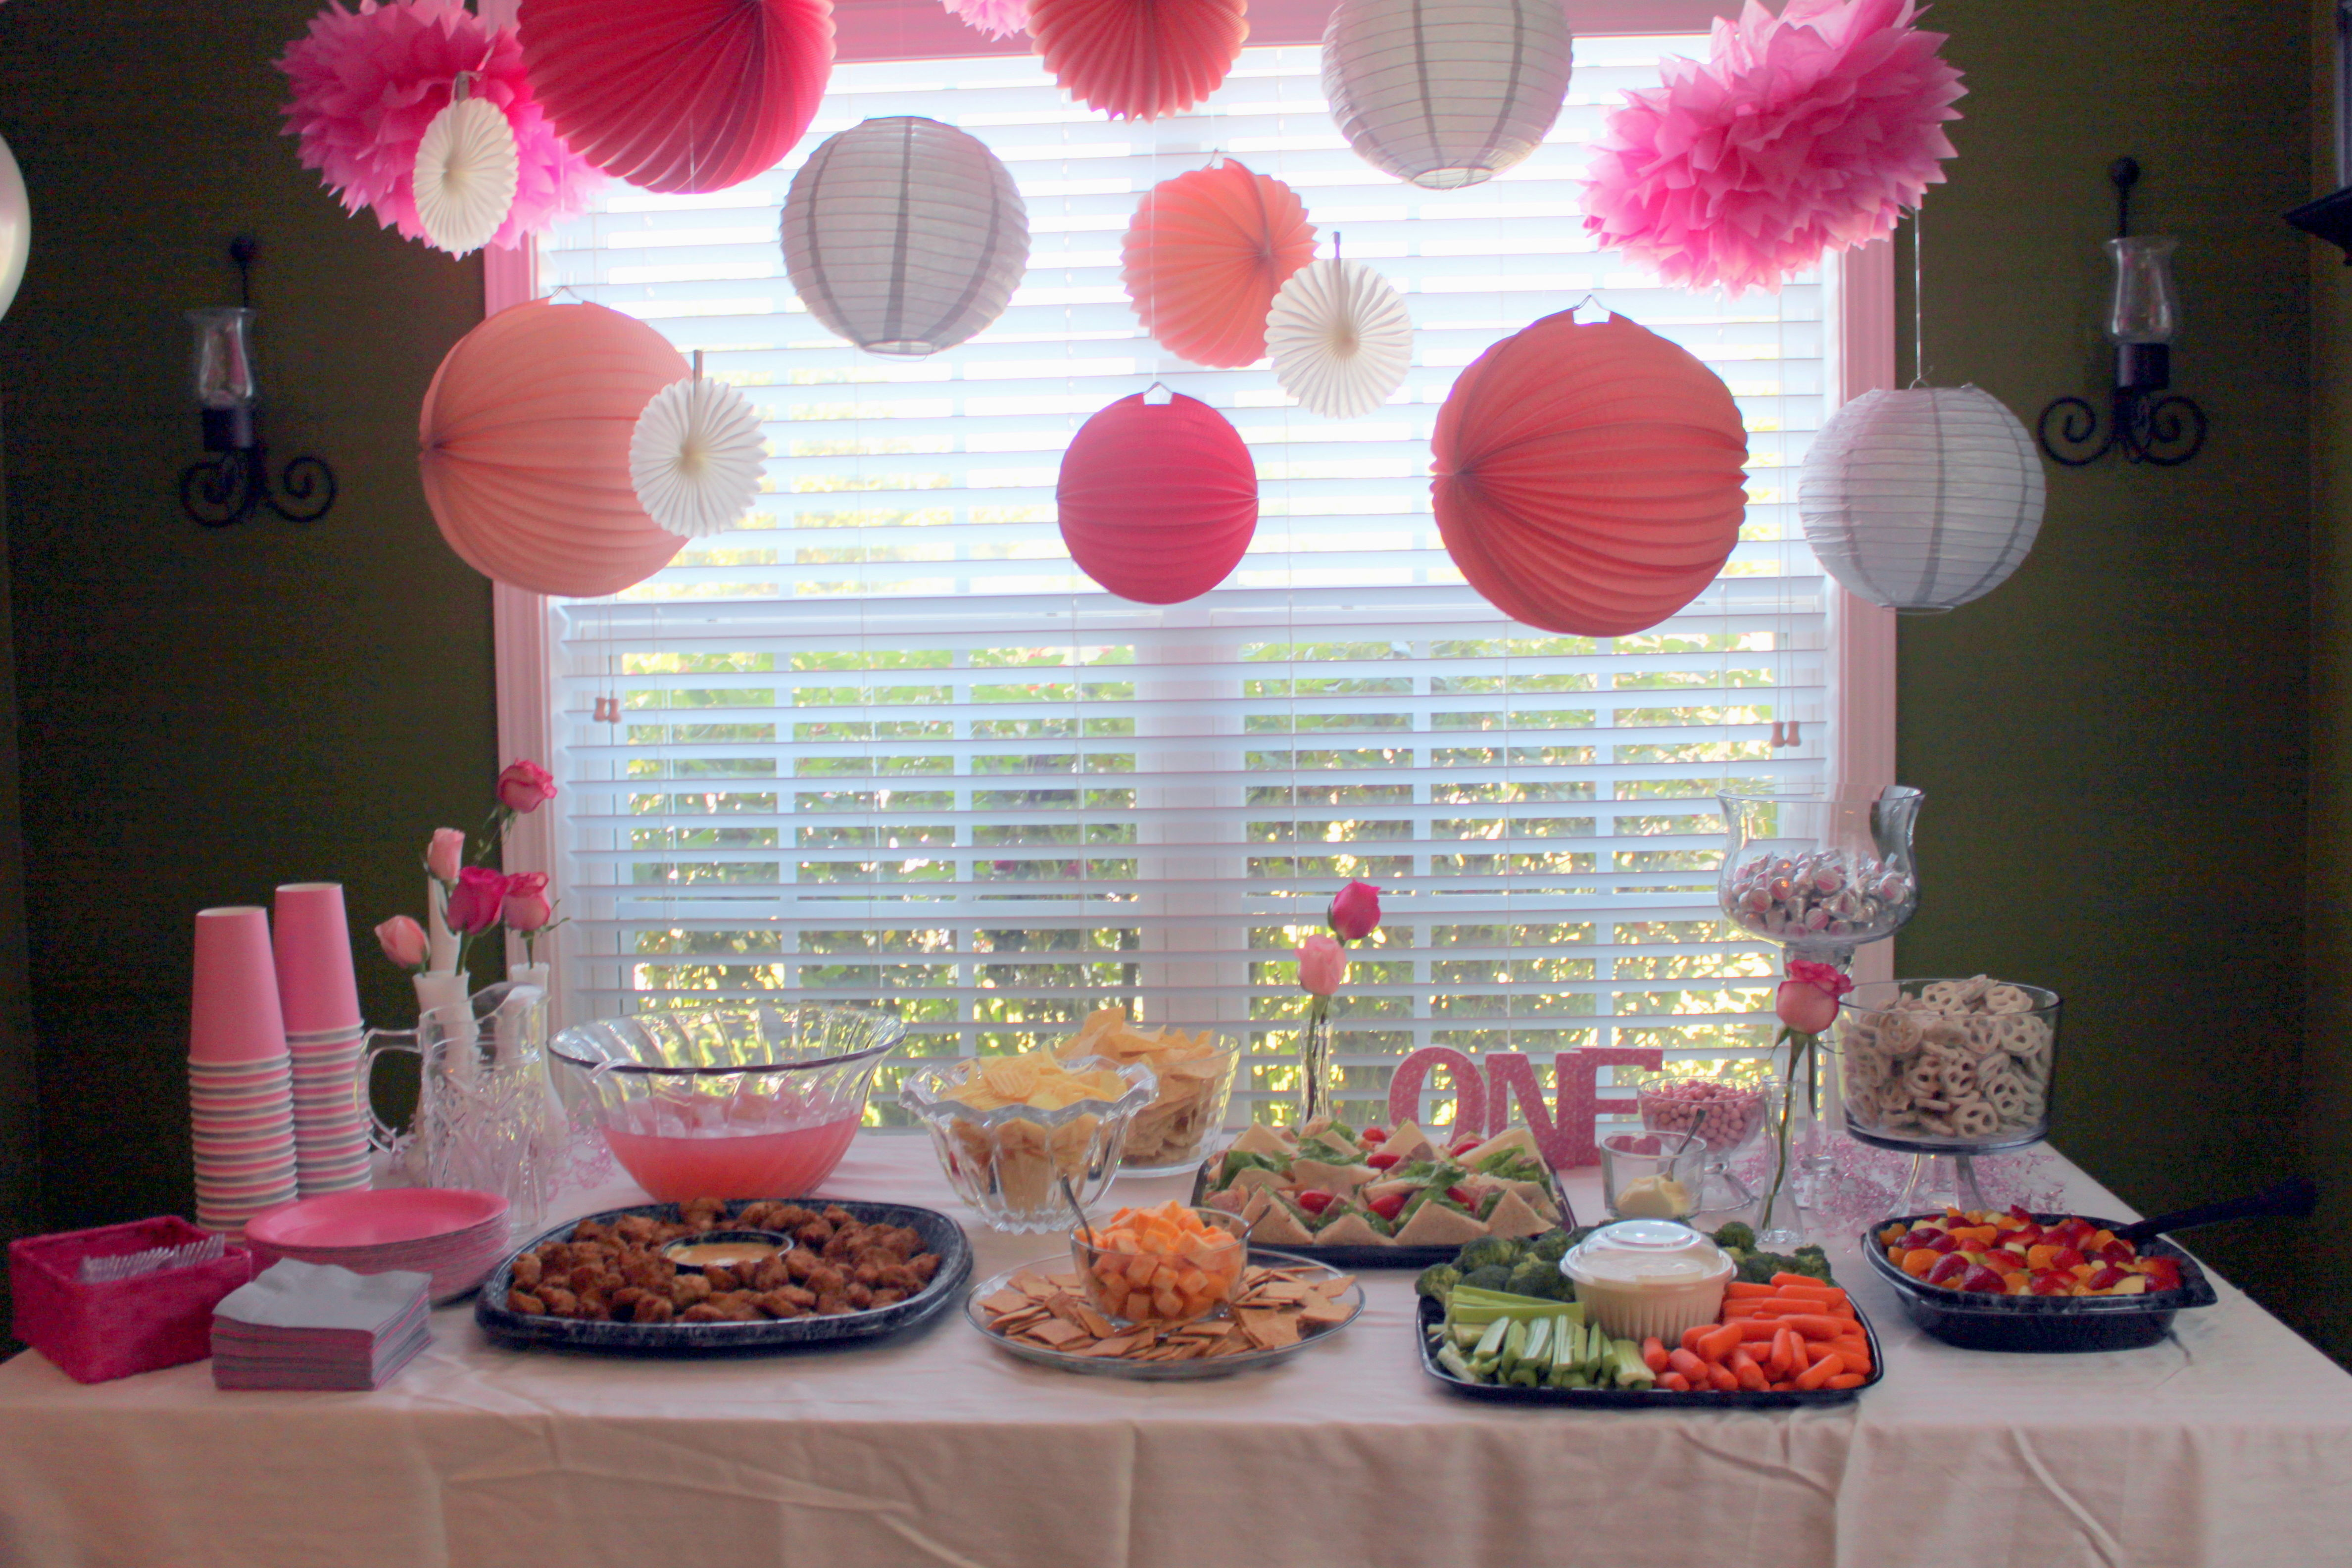 themed birthday party ideas for baby girl ; theme-party-ideas-for-baby-girl-themed-birthday-party-ideas-for-teens